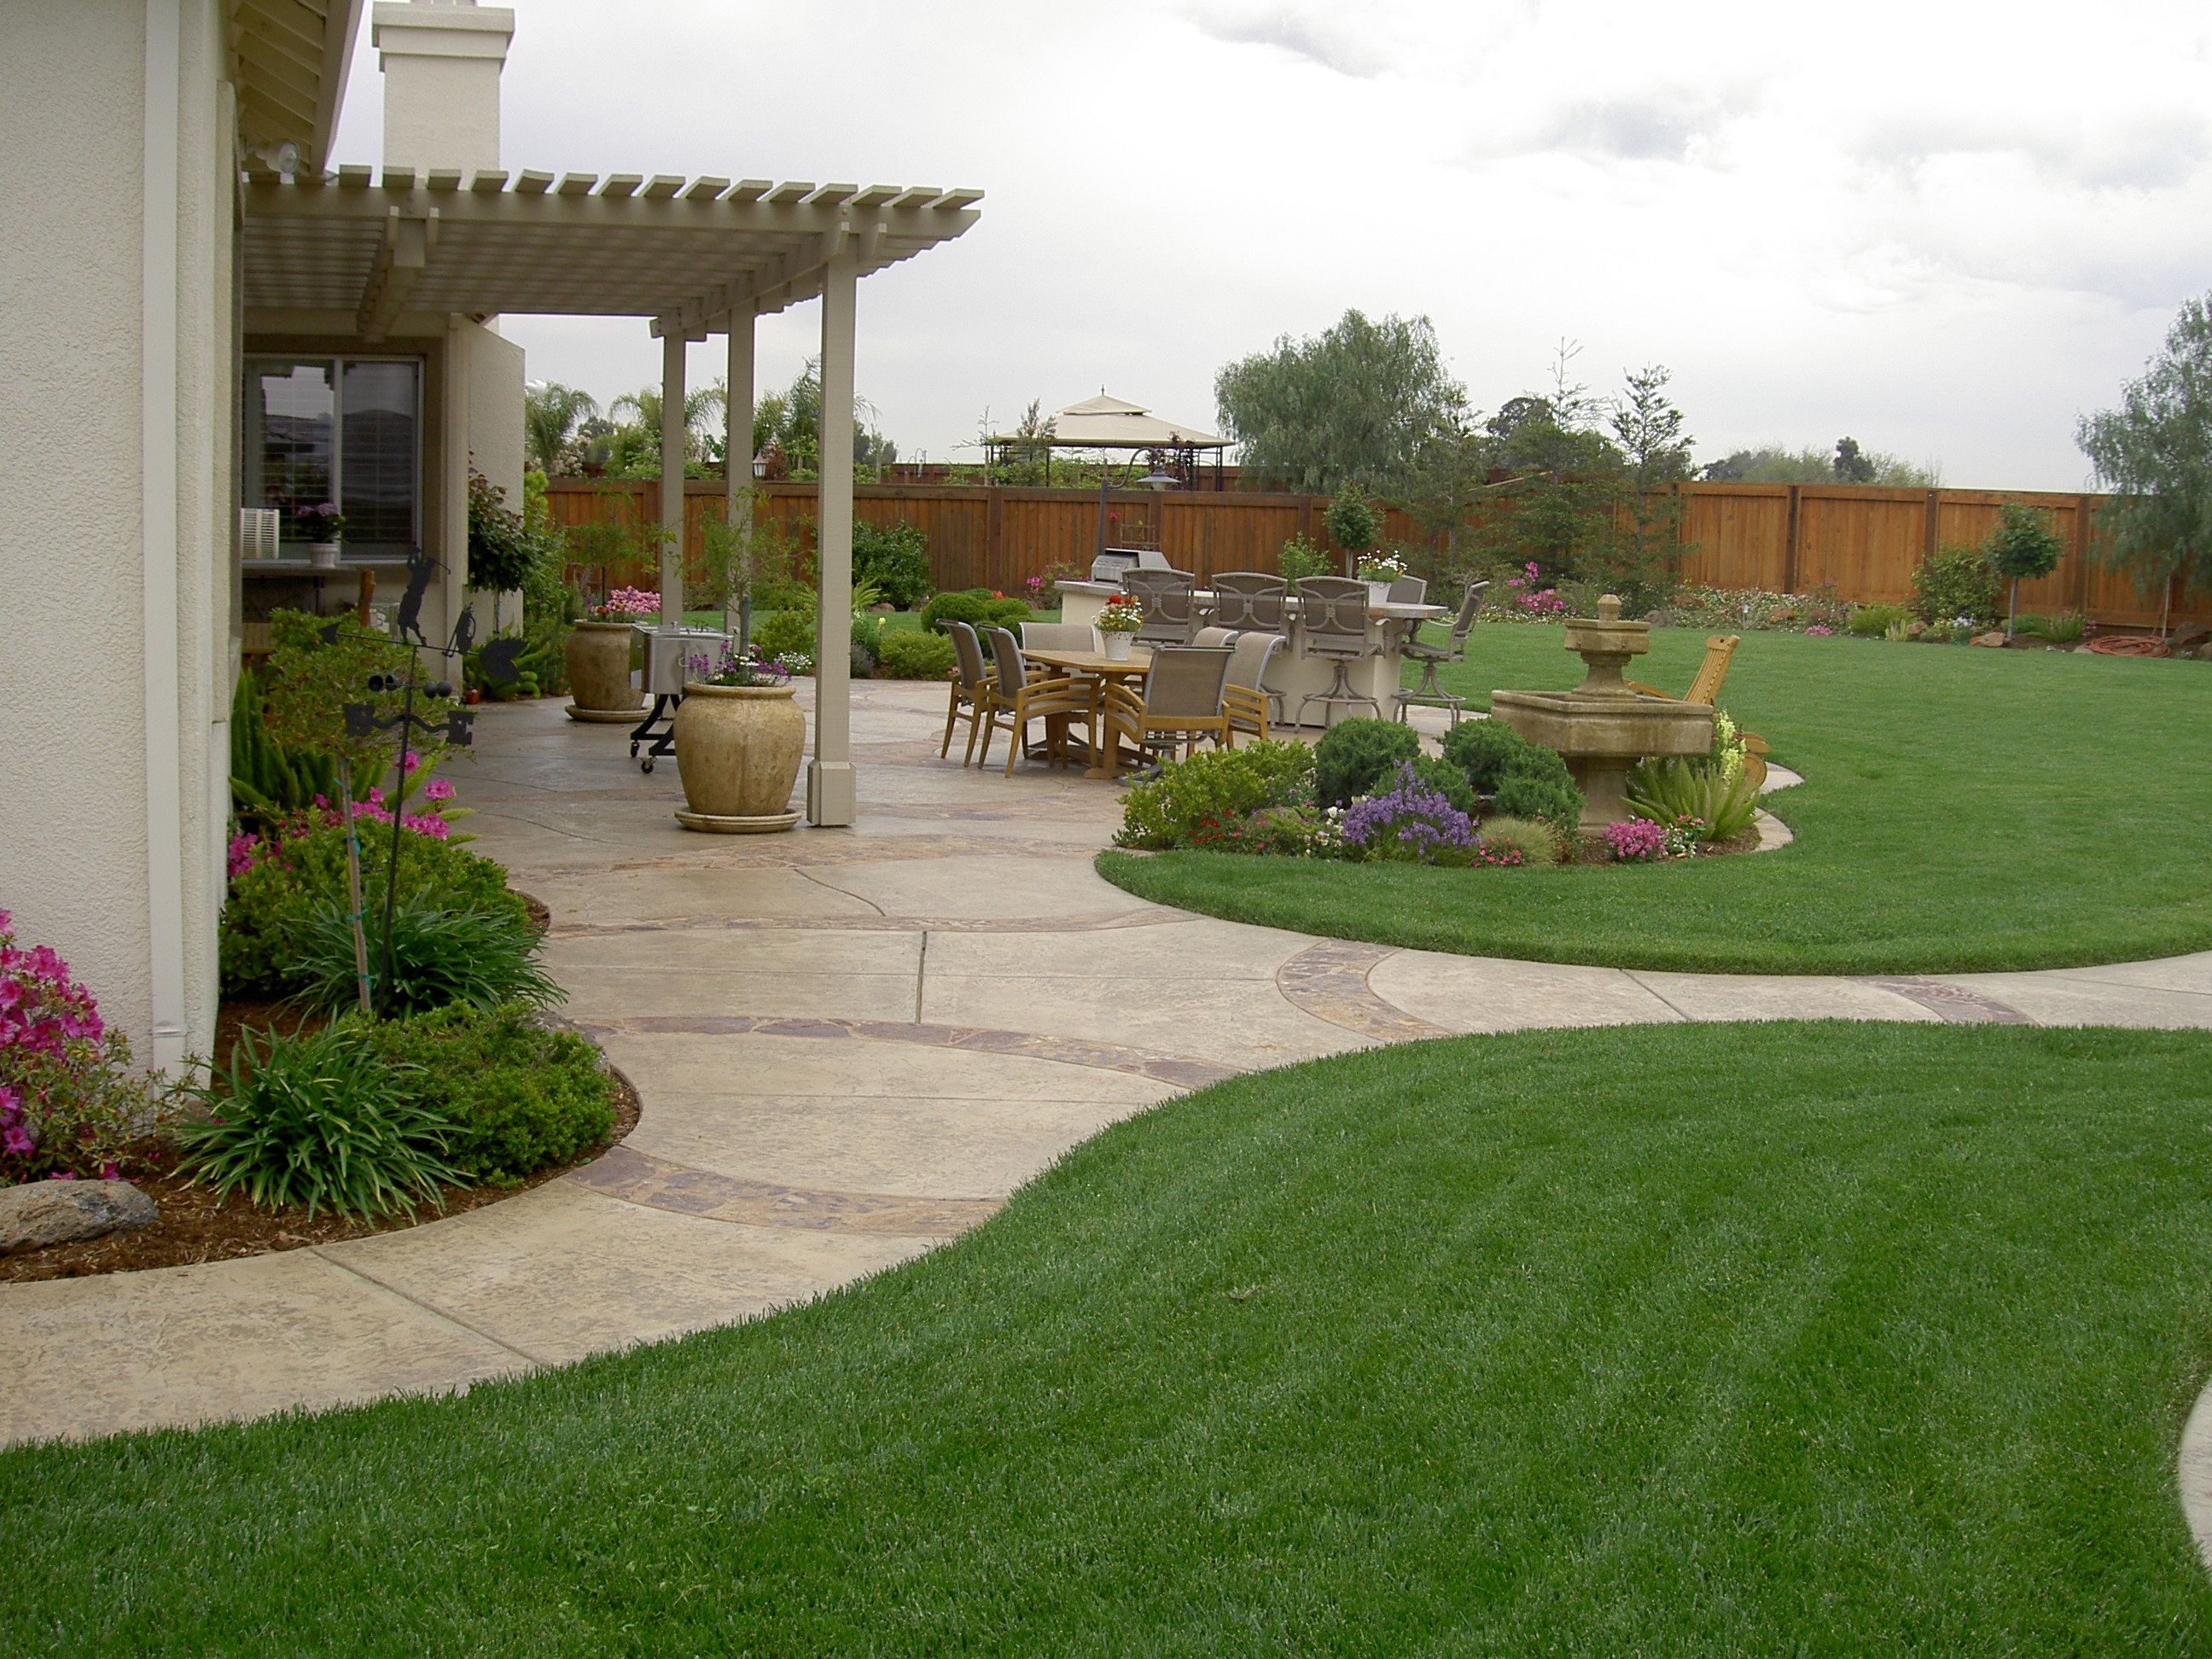 20 Awesome Landscaping Ideas For Your Backyard Gardensoutdoor throughout Backyard Landscapers